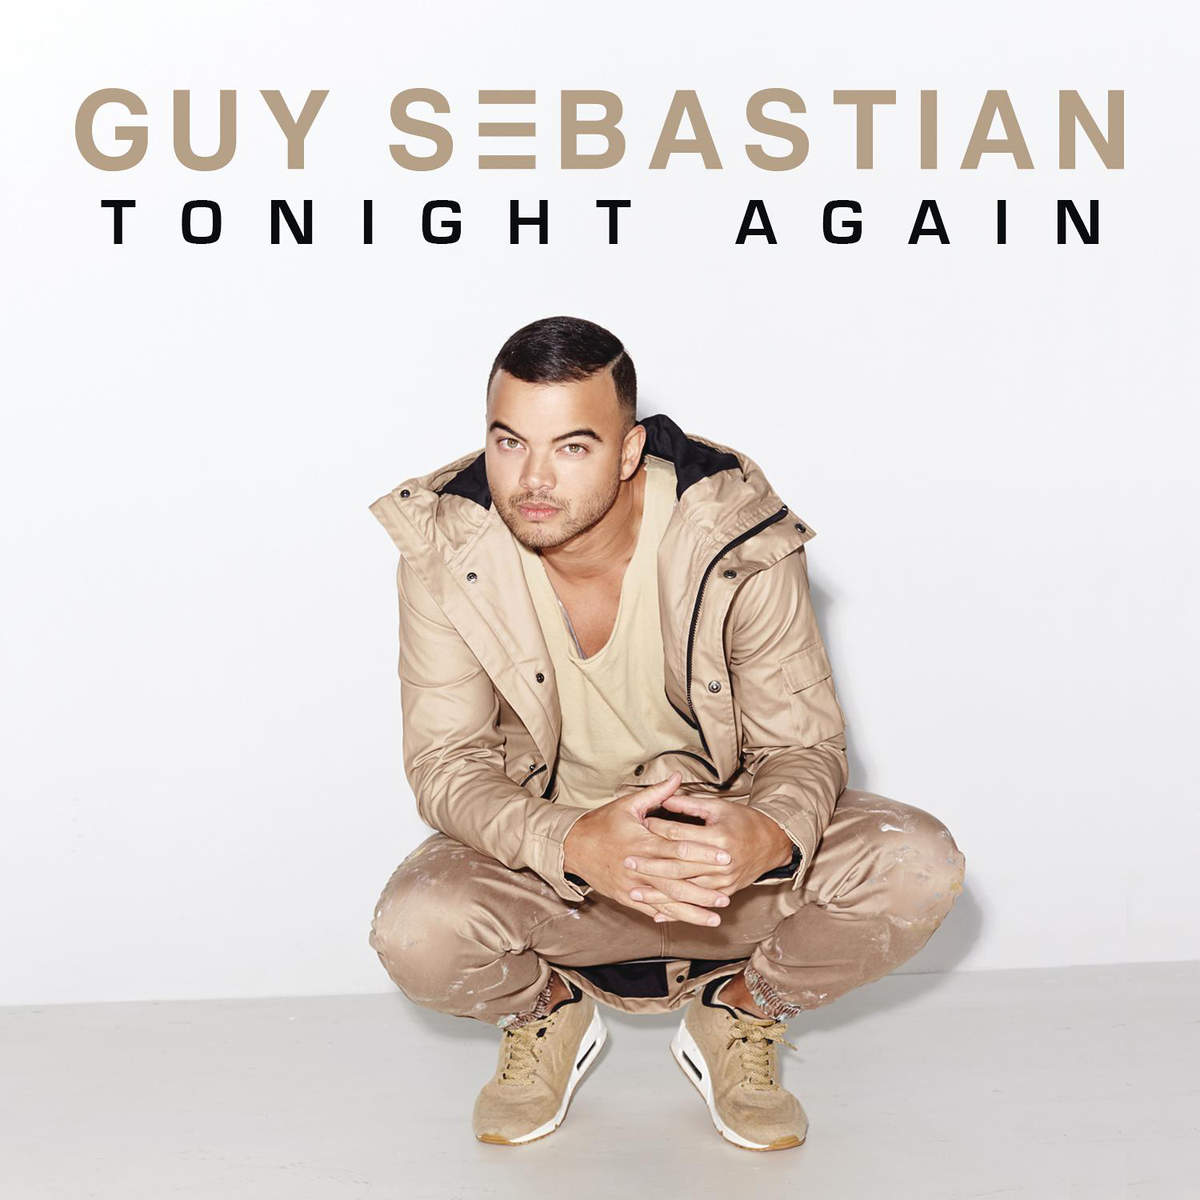 Guy sebastian tonight again 2015 1200x12001